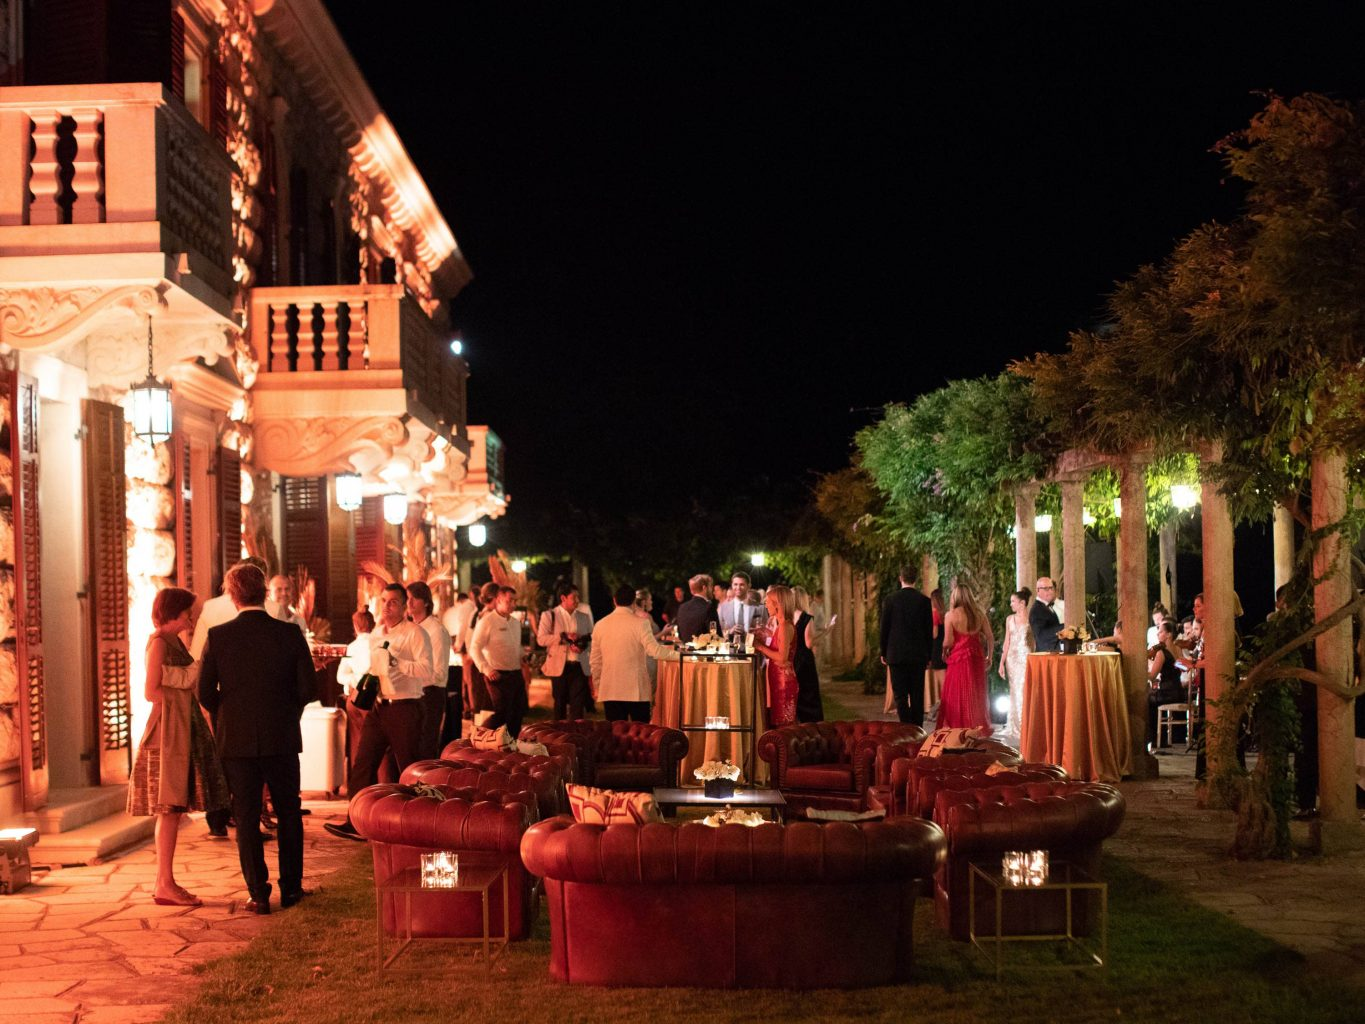 Casino Royale-themed party at this Aman Sveti Stefan Montenegro destination wedding weekend | Photo by Allan Zepeda